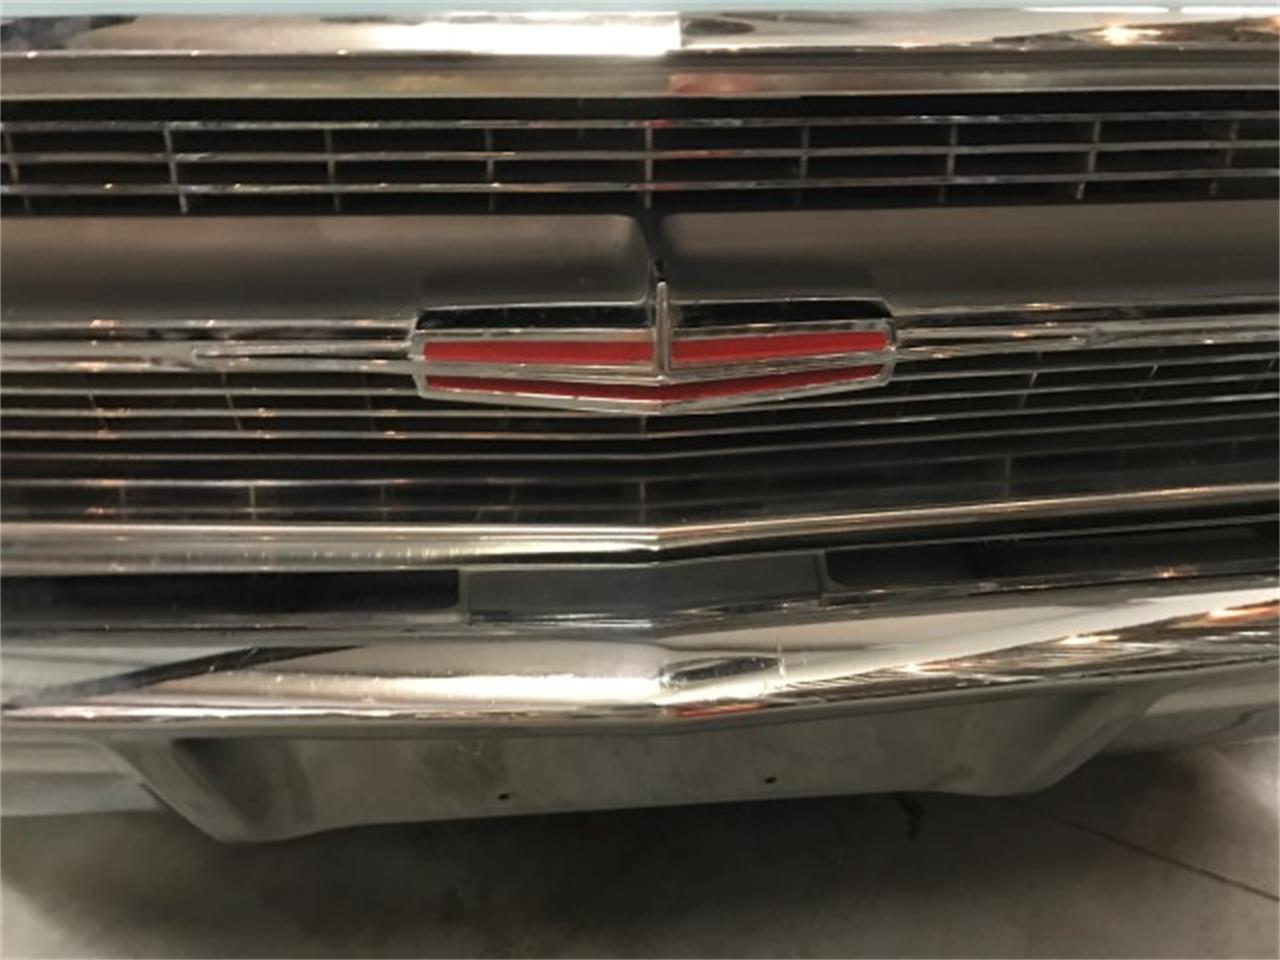 Large Picture of 1964 Oldsmobile Jetstar 88 located in SHERWOOD Oregon - $17,500.00 - LFW4